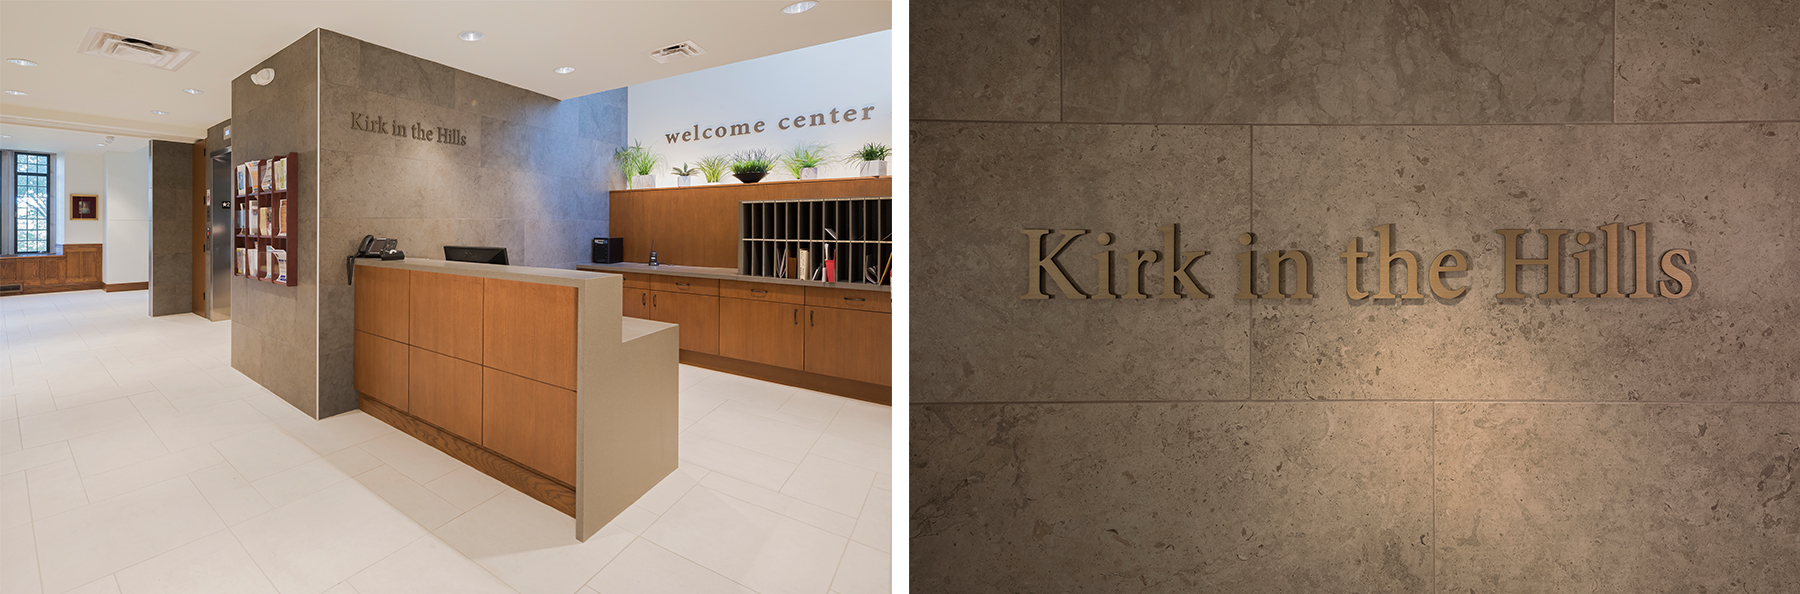 wayfinding signs by Ideation Signs Royal Oak MI